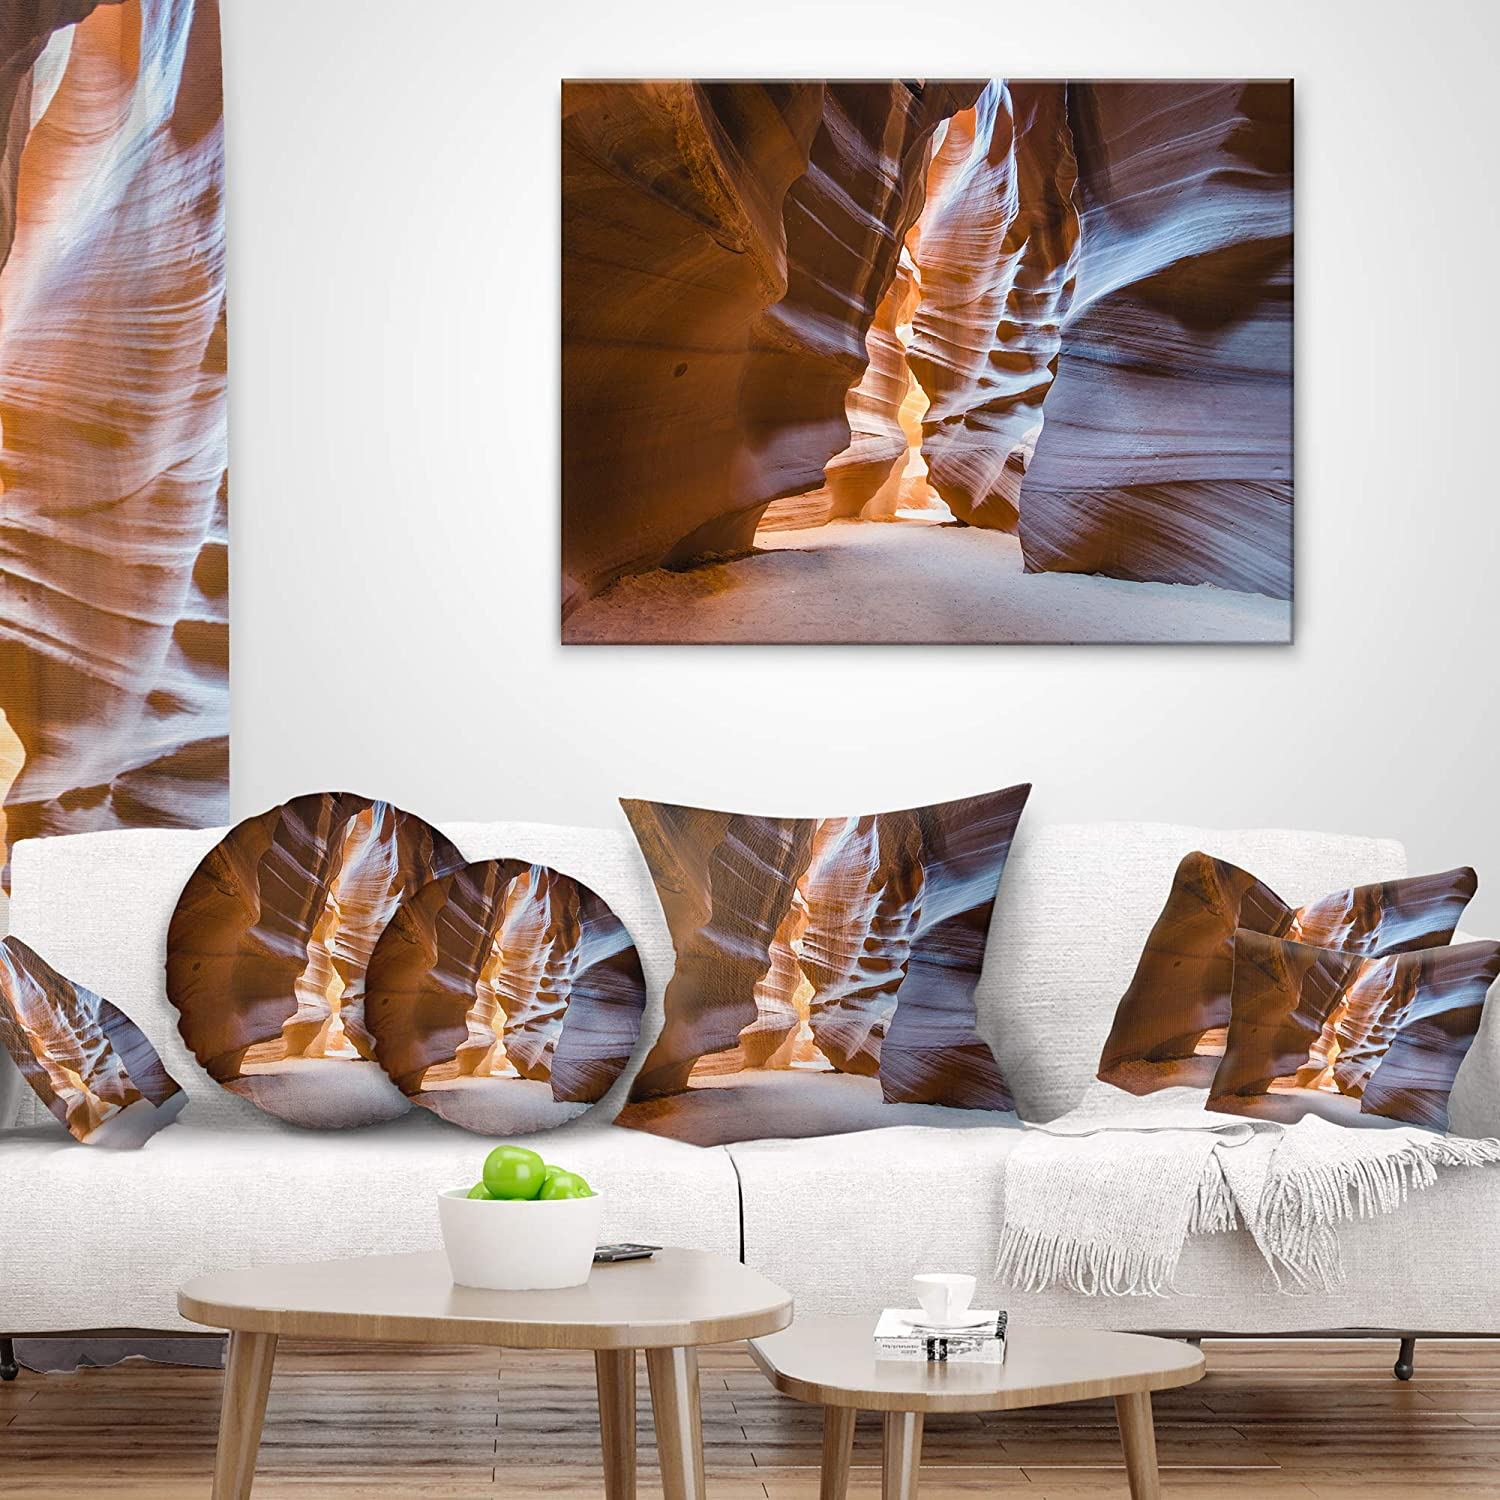 Designart CU8729-20-20-C Antelope Canyon Glow Inside Landscape Photography Round Cushion Cover for Living Room Sofa Throw Pillow 20 Insert Printed On Both Side